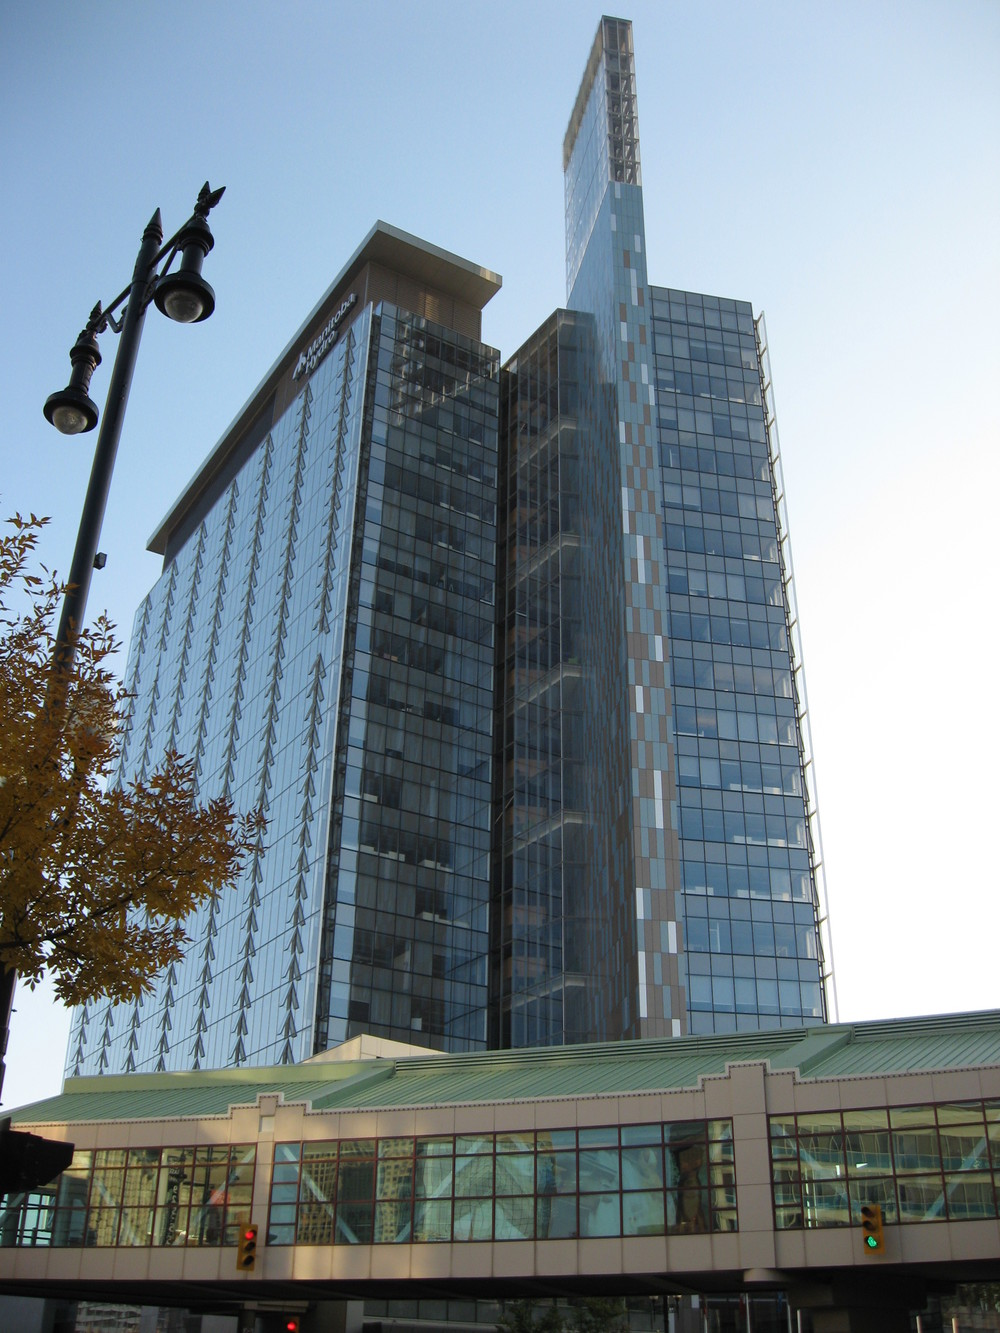 Manitoba Hydro building was one of the first LEED Platinum office building in North America.